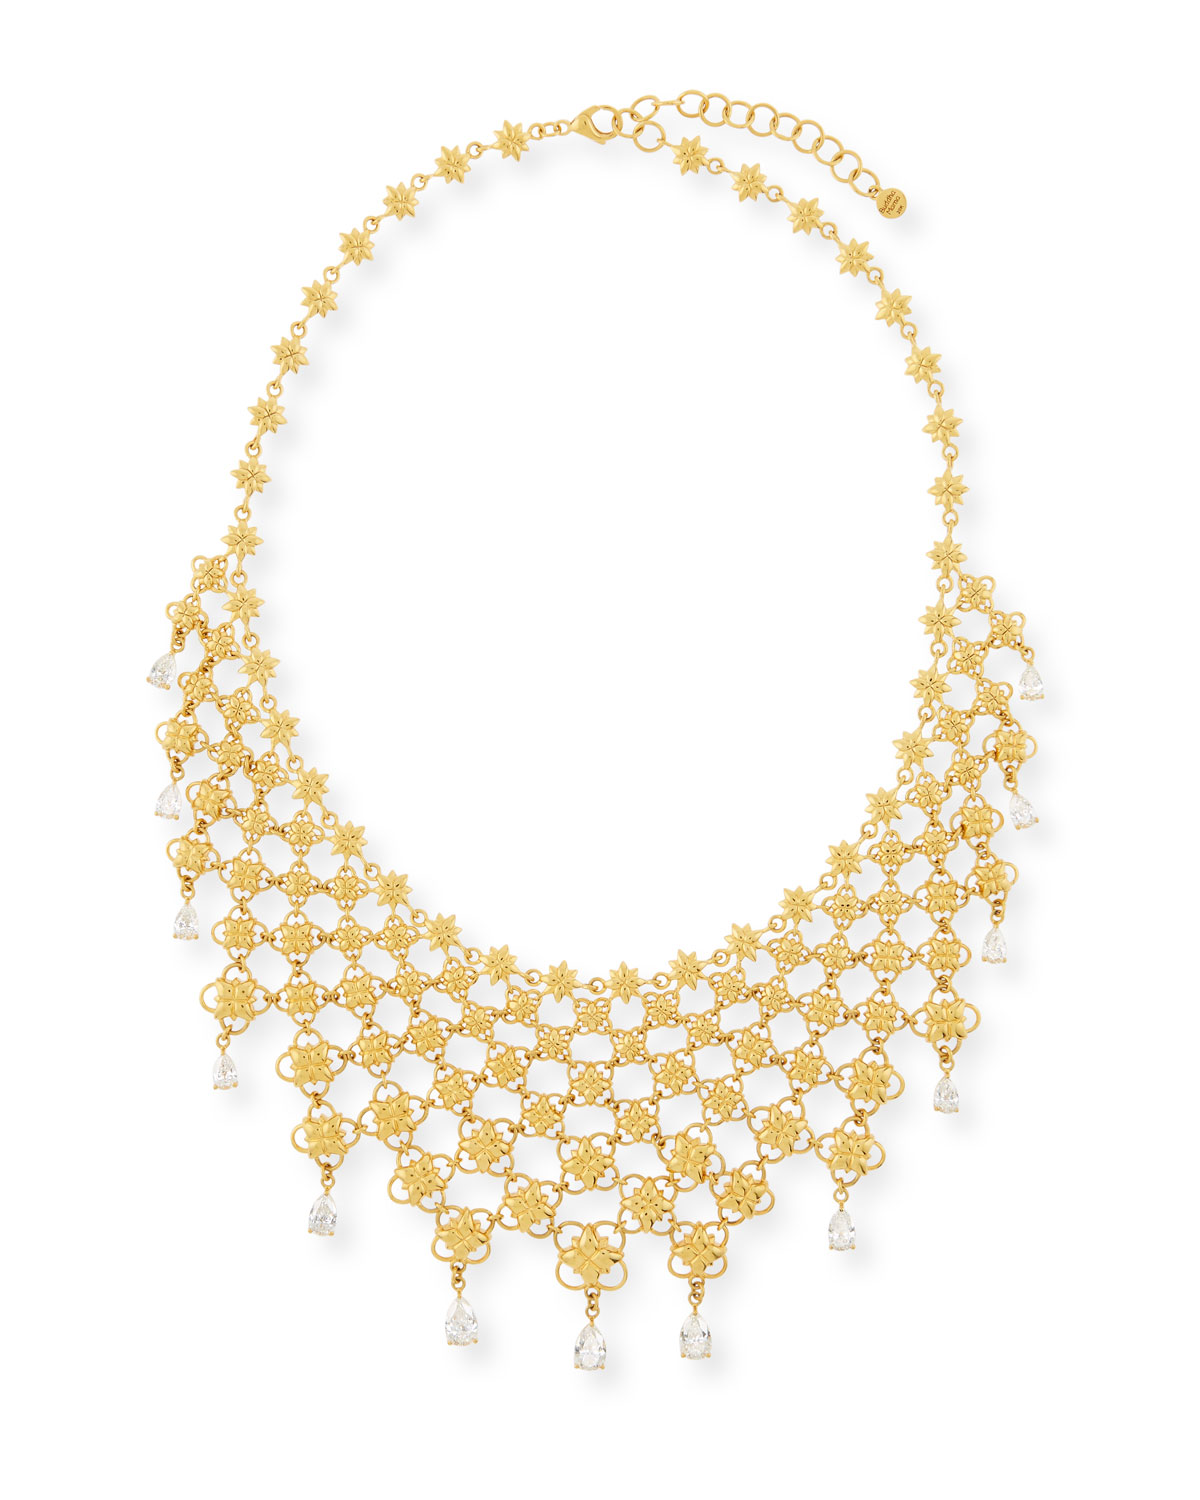 BUDDHA MAMA 20K MESH BIB NECKLACE W/ PEAR-CUT DIAMONDS